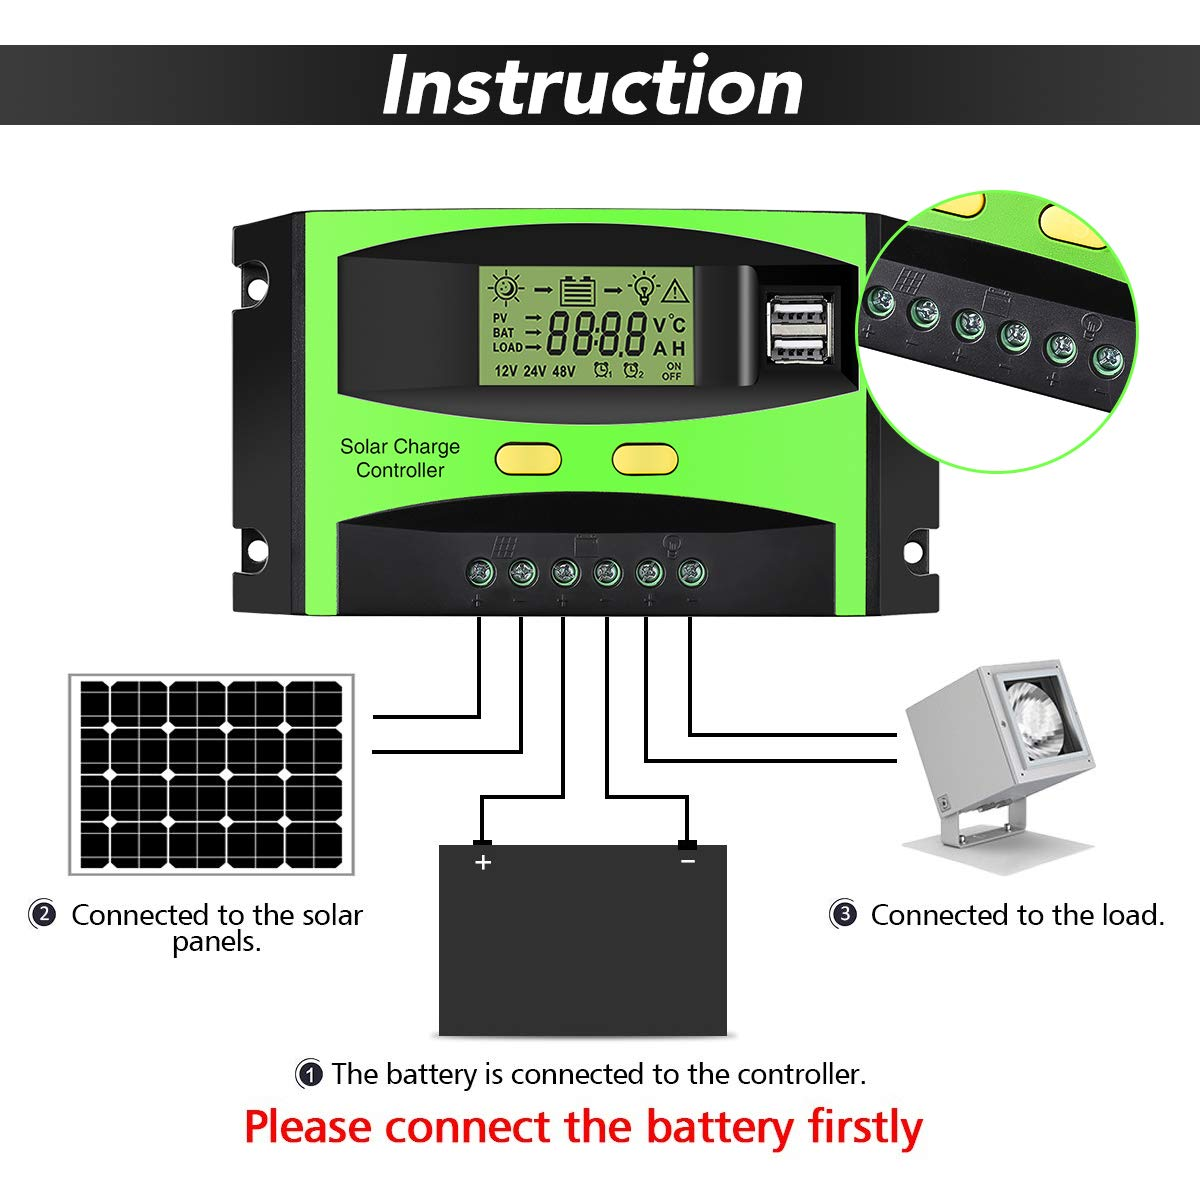 MOHOO Solar Charge Controller, 30A Solar Charger Controller, 12V/24V Solar Panel Intelligent Regulator with Dual USB Port and PWM LCD Display by MOHOO (Image #3)